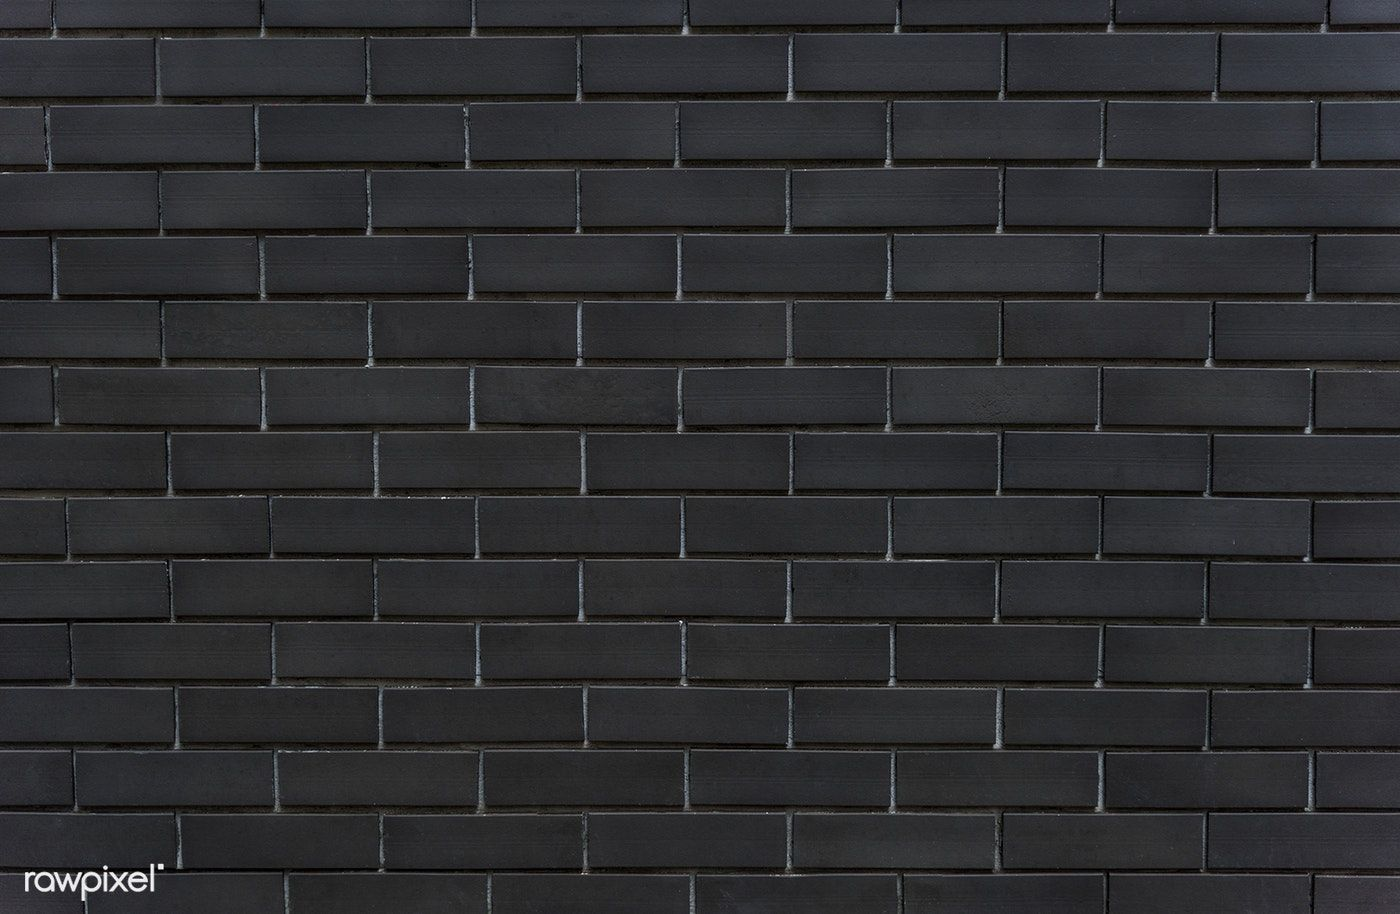 Black Brick Wall Textured Background Free Image By Rawpixel Com Black Brick Wall Black Brick Brick Wall Wallpaper